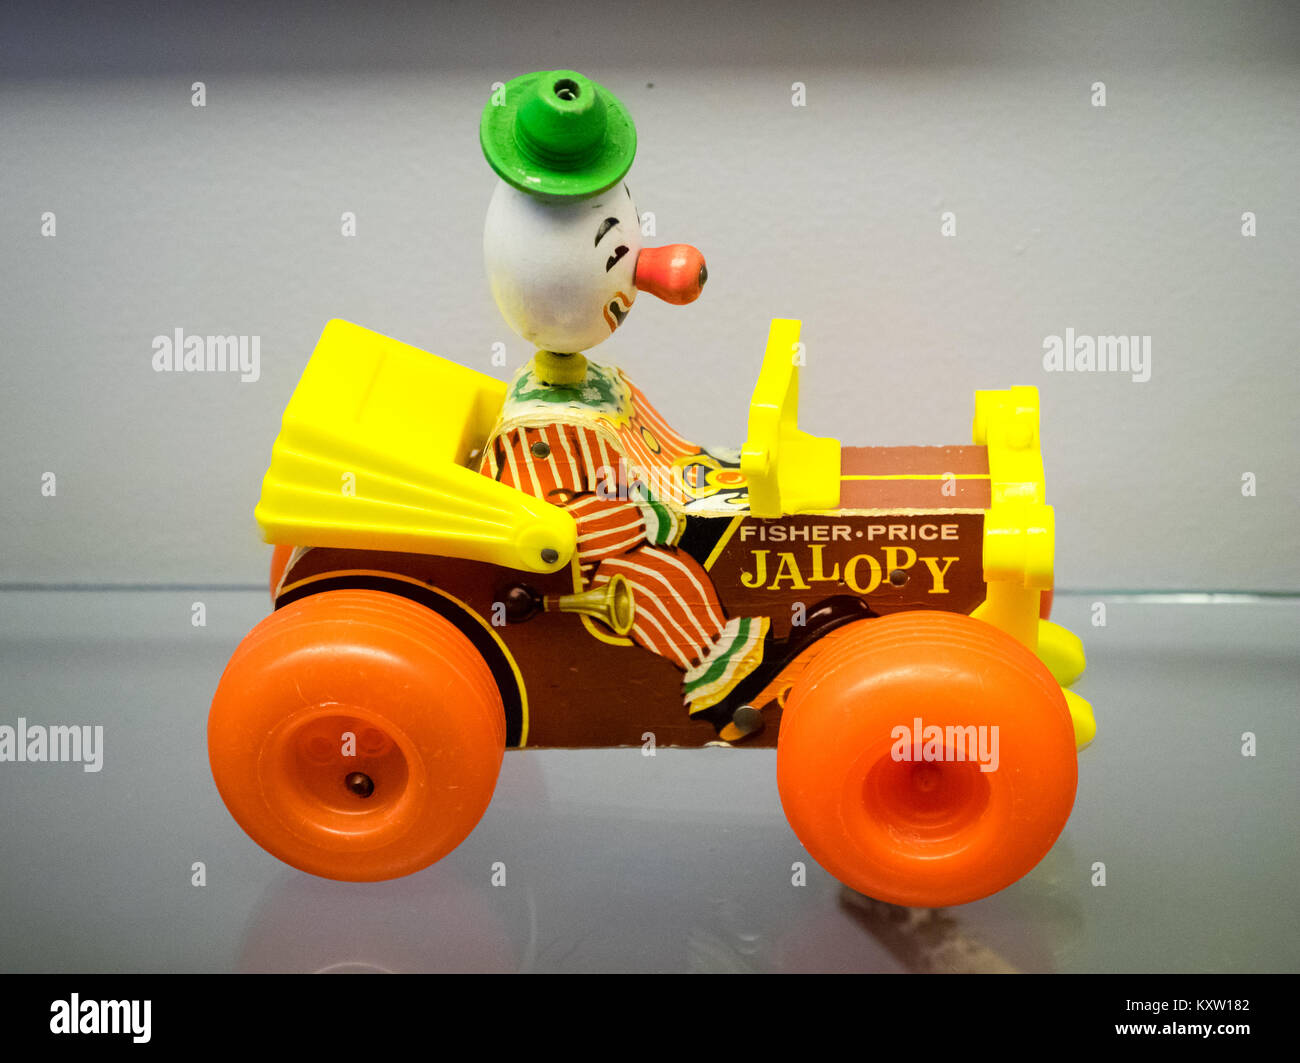 A Fisher-Price Jolly Jalopy #724, a classic toy manufactured by Fisher-Price from 1965-1978. - Stock Image